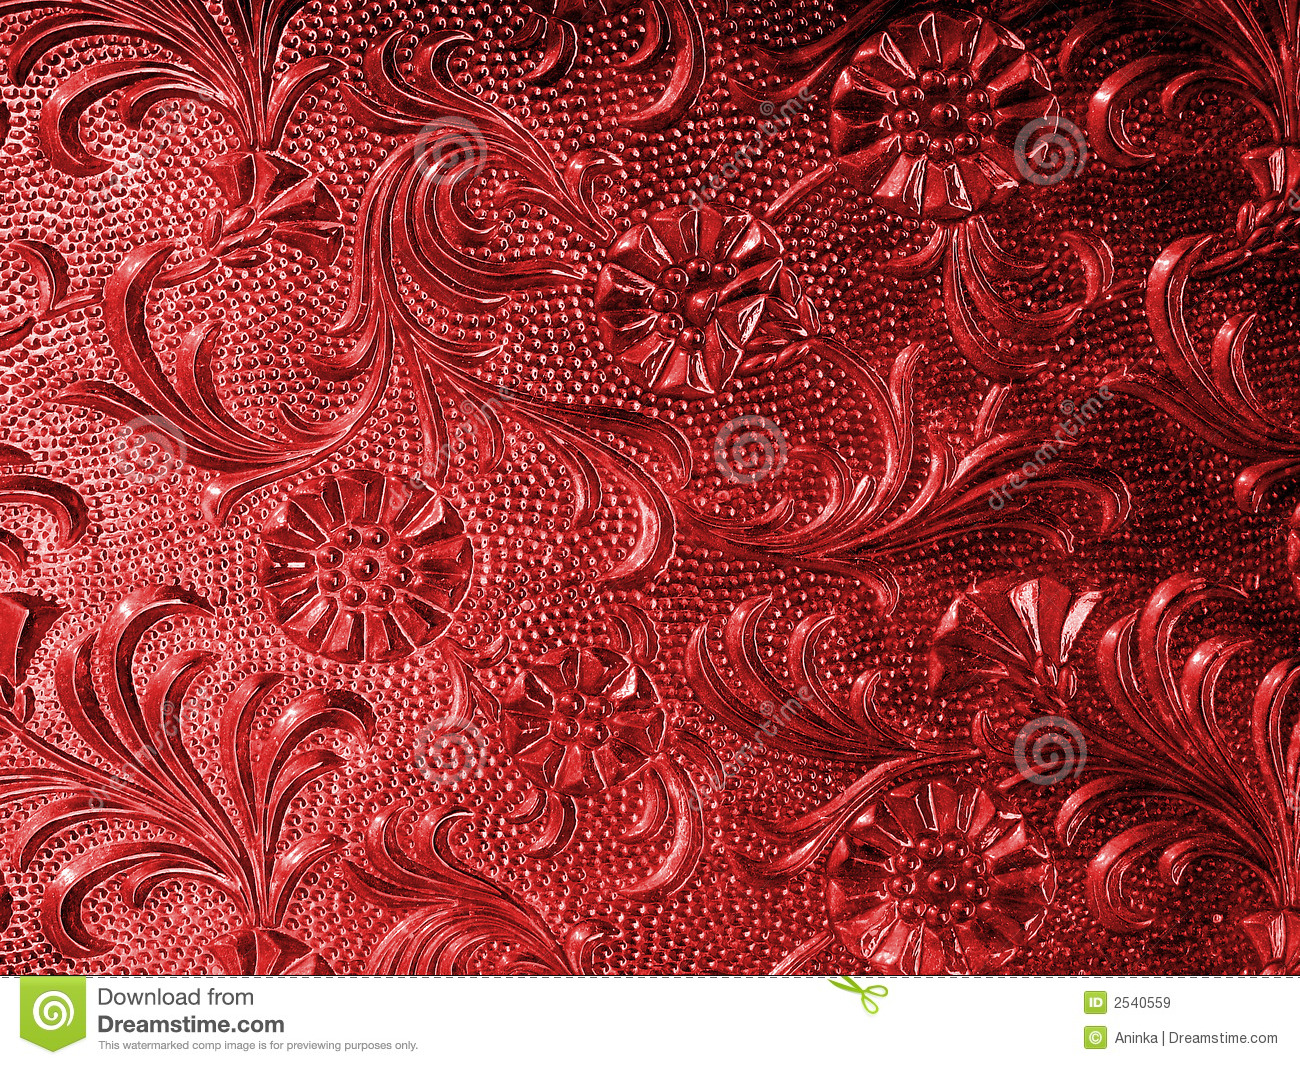 Luxury 3d Wallpaper Vintage Glass Red Royalty Free Stock Images Image 2540559